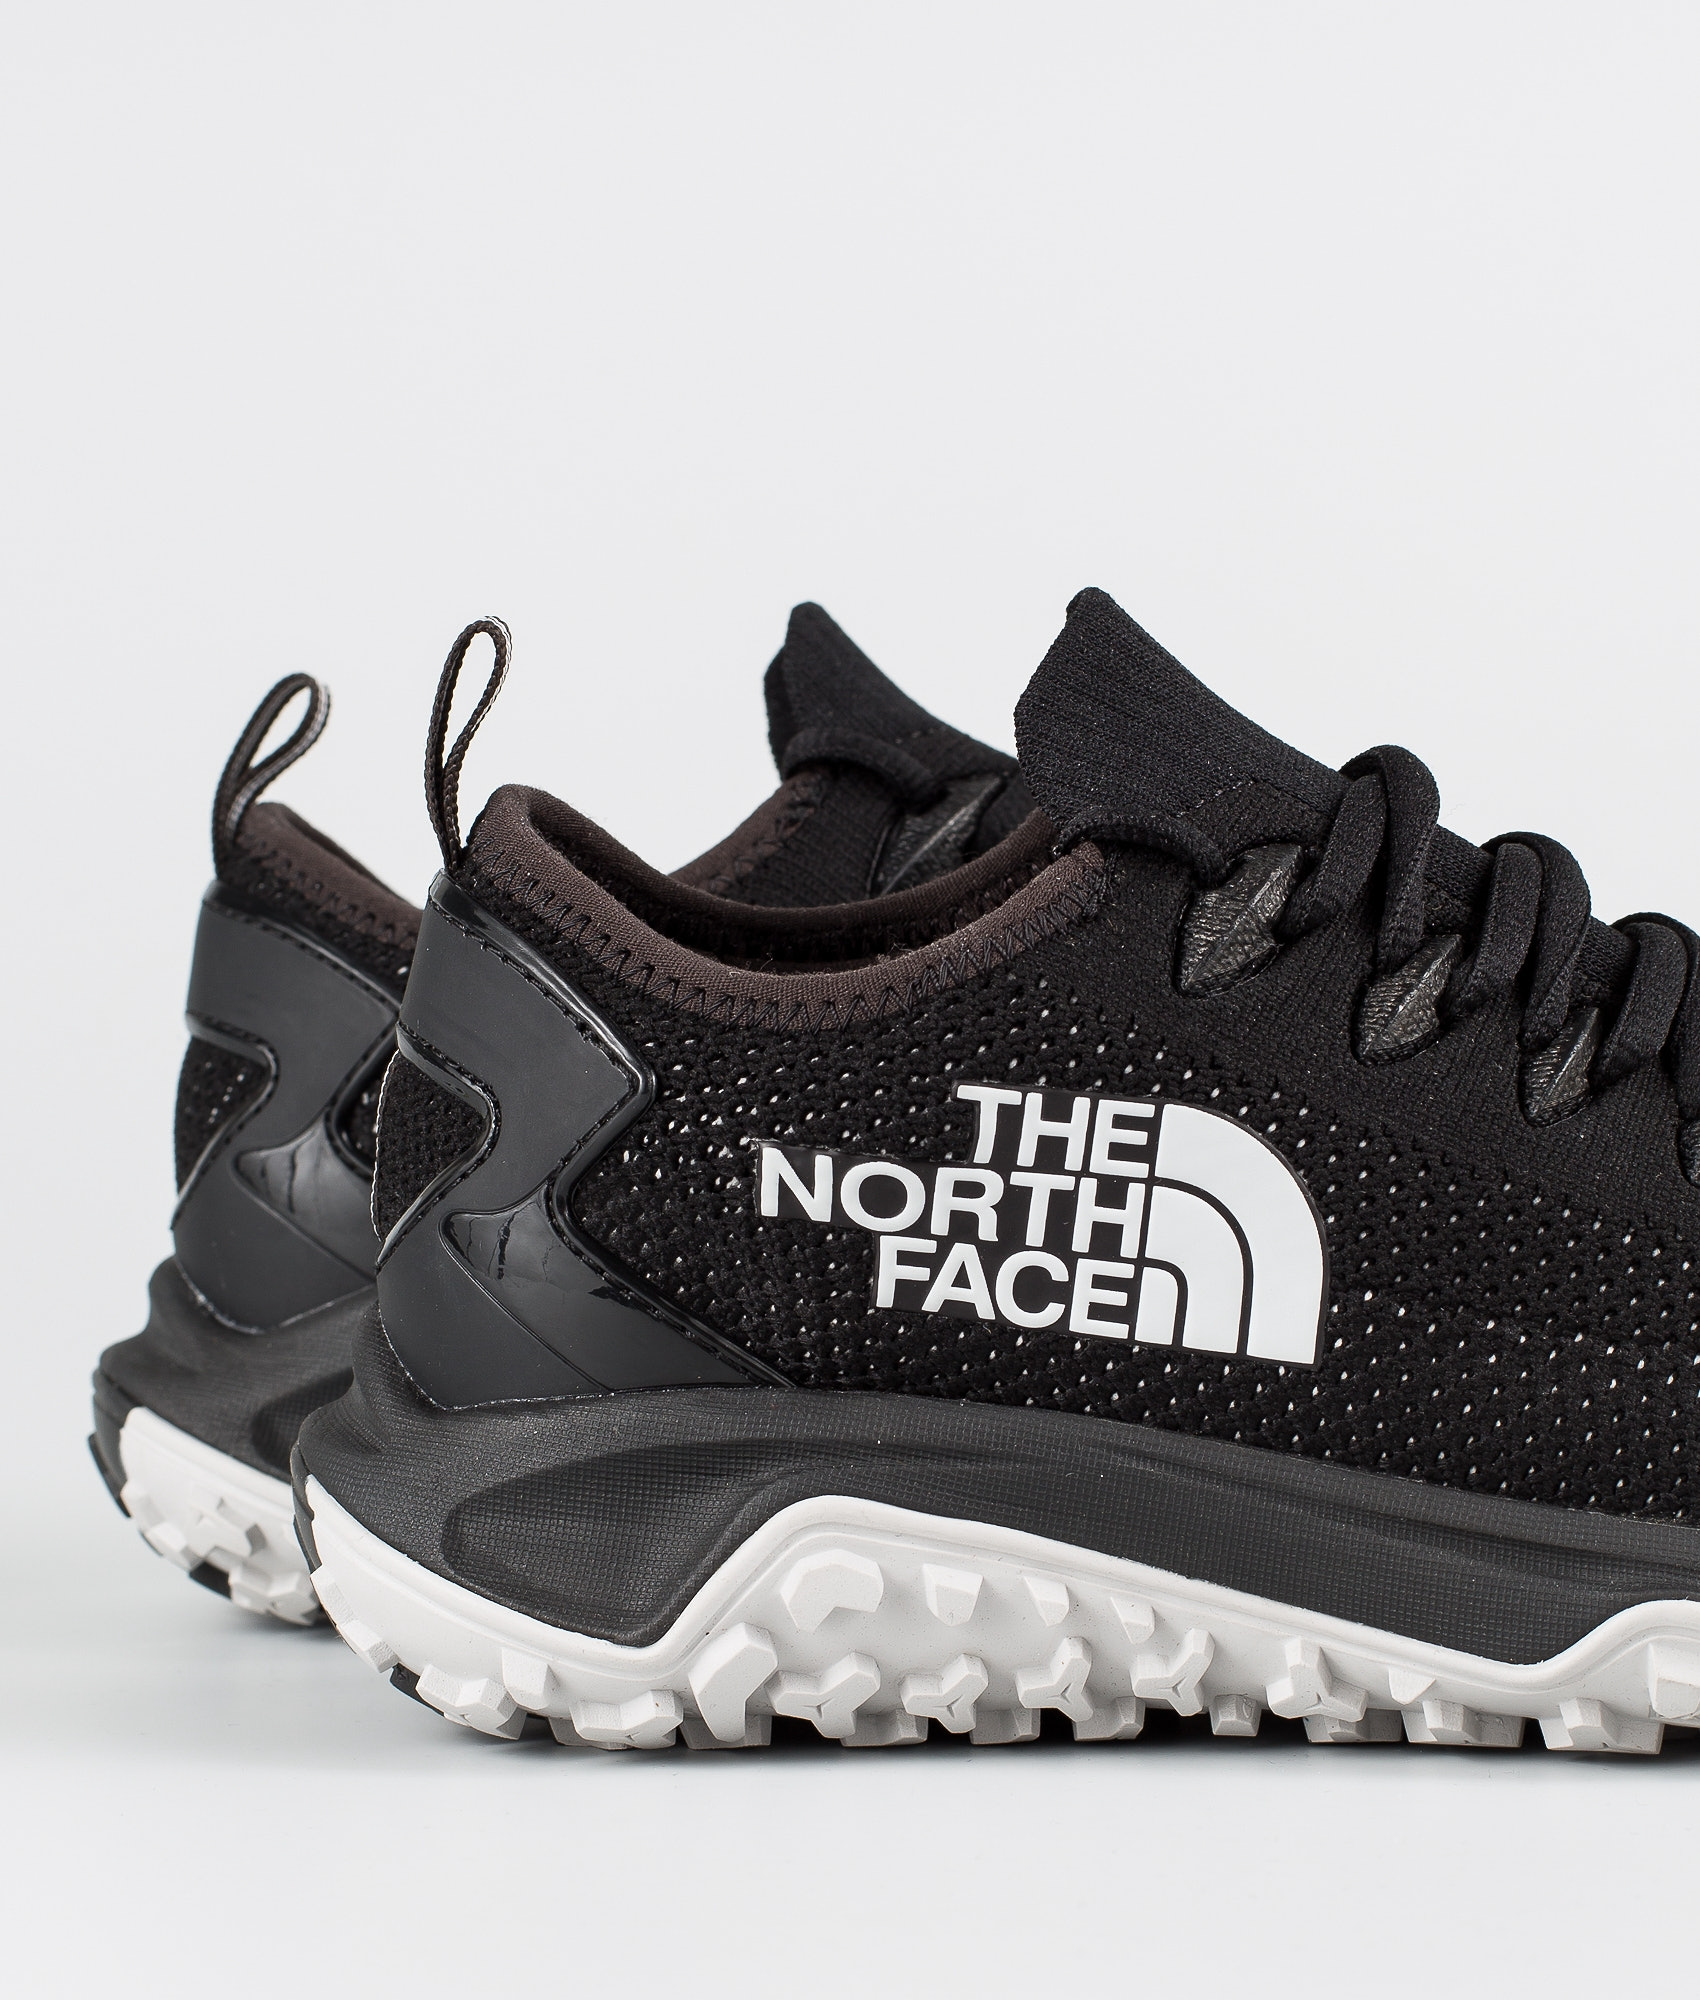 82d1400b9e5 The North Face Truxel Outdoor Shoes Tnf Black/Micro Chip Grey